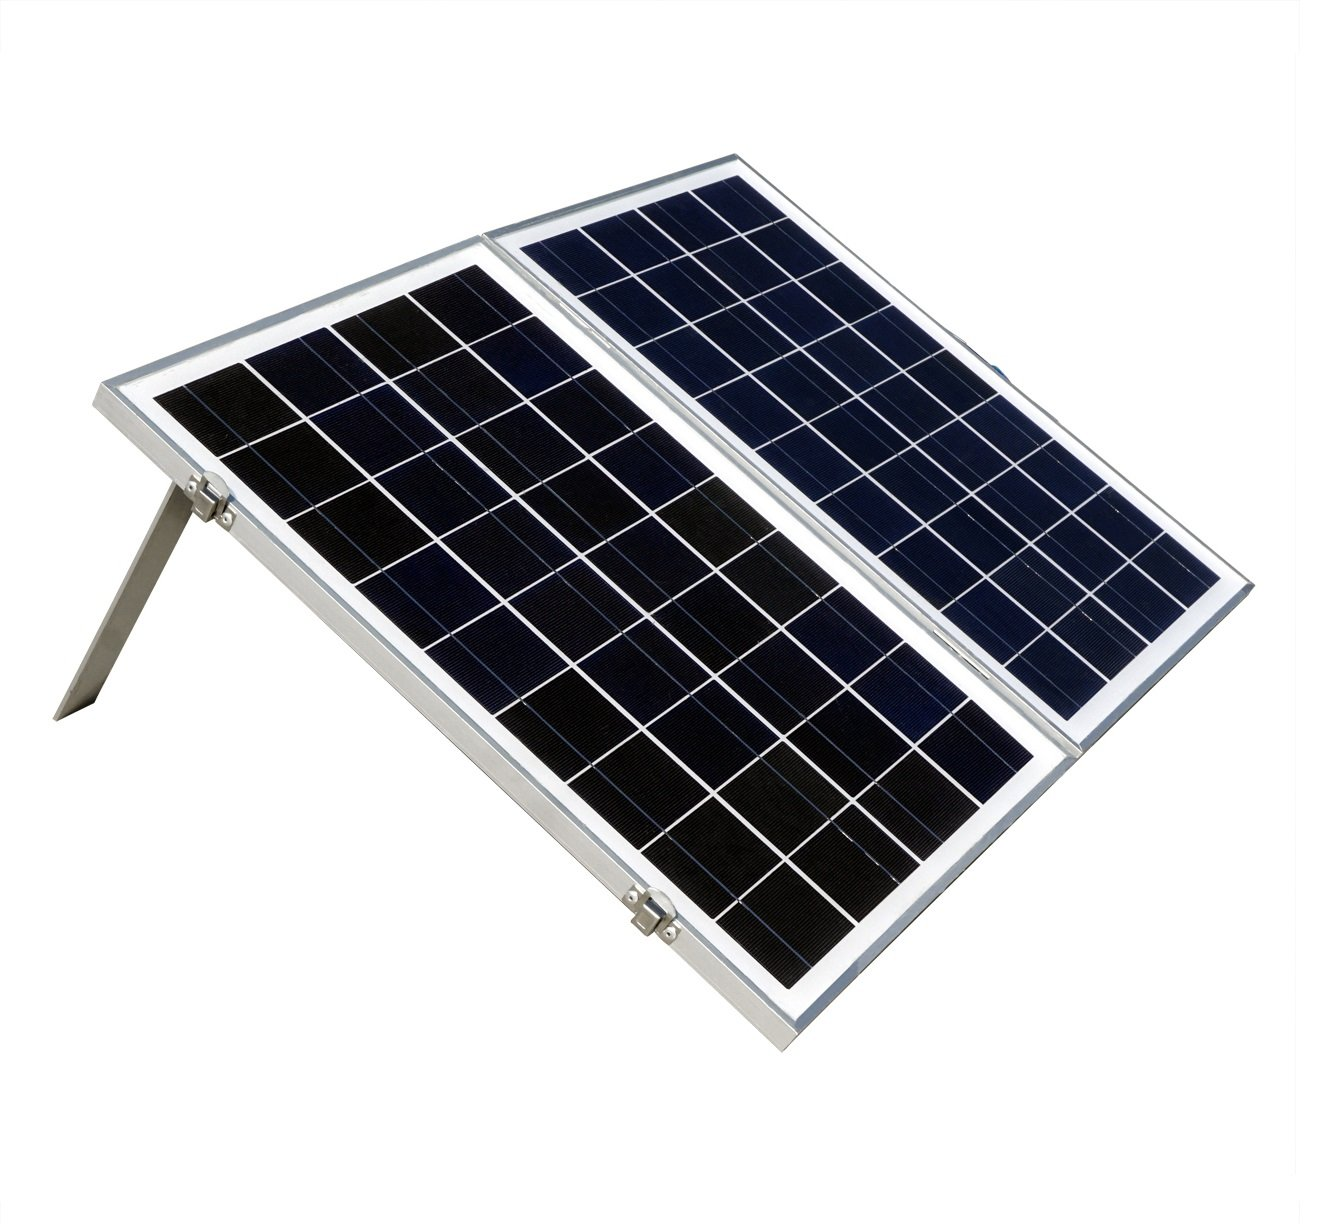 Eco Worthy 40w 12v Solar Charger Kits Portable Folding Simple Mppt Panel Charge Controllersmpptfrontendpng Module With 3 Amp Controller For Rv Boat Garden Outdoor